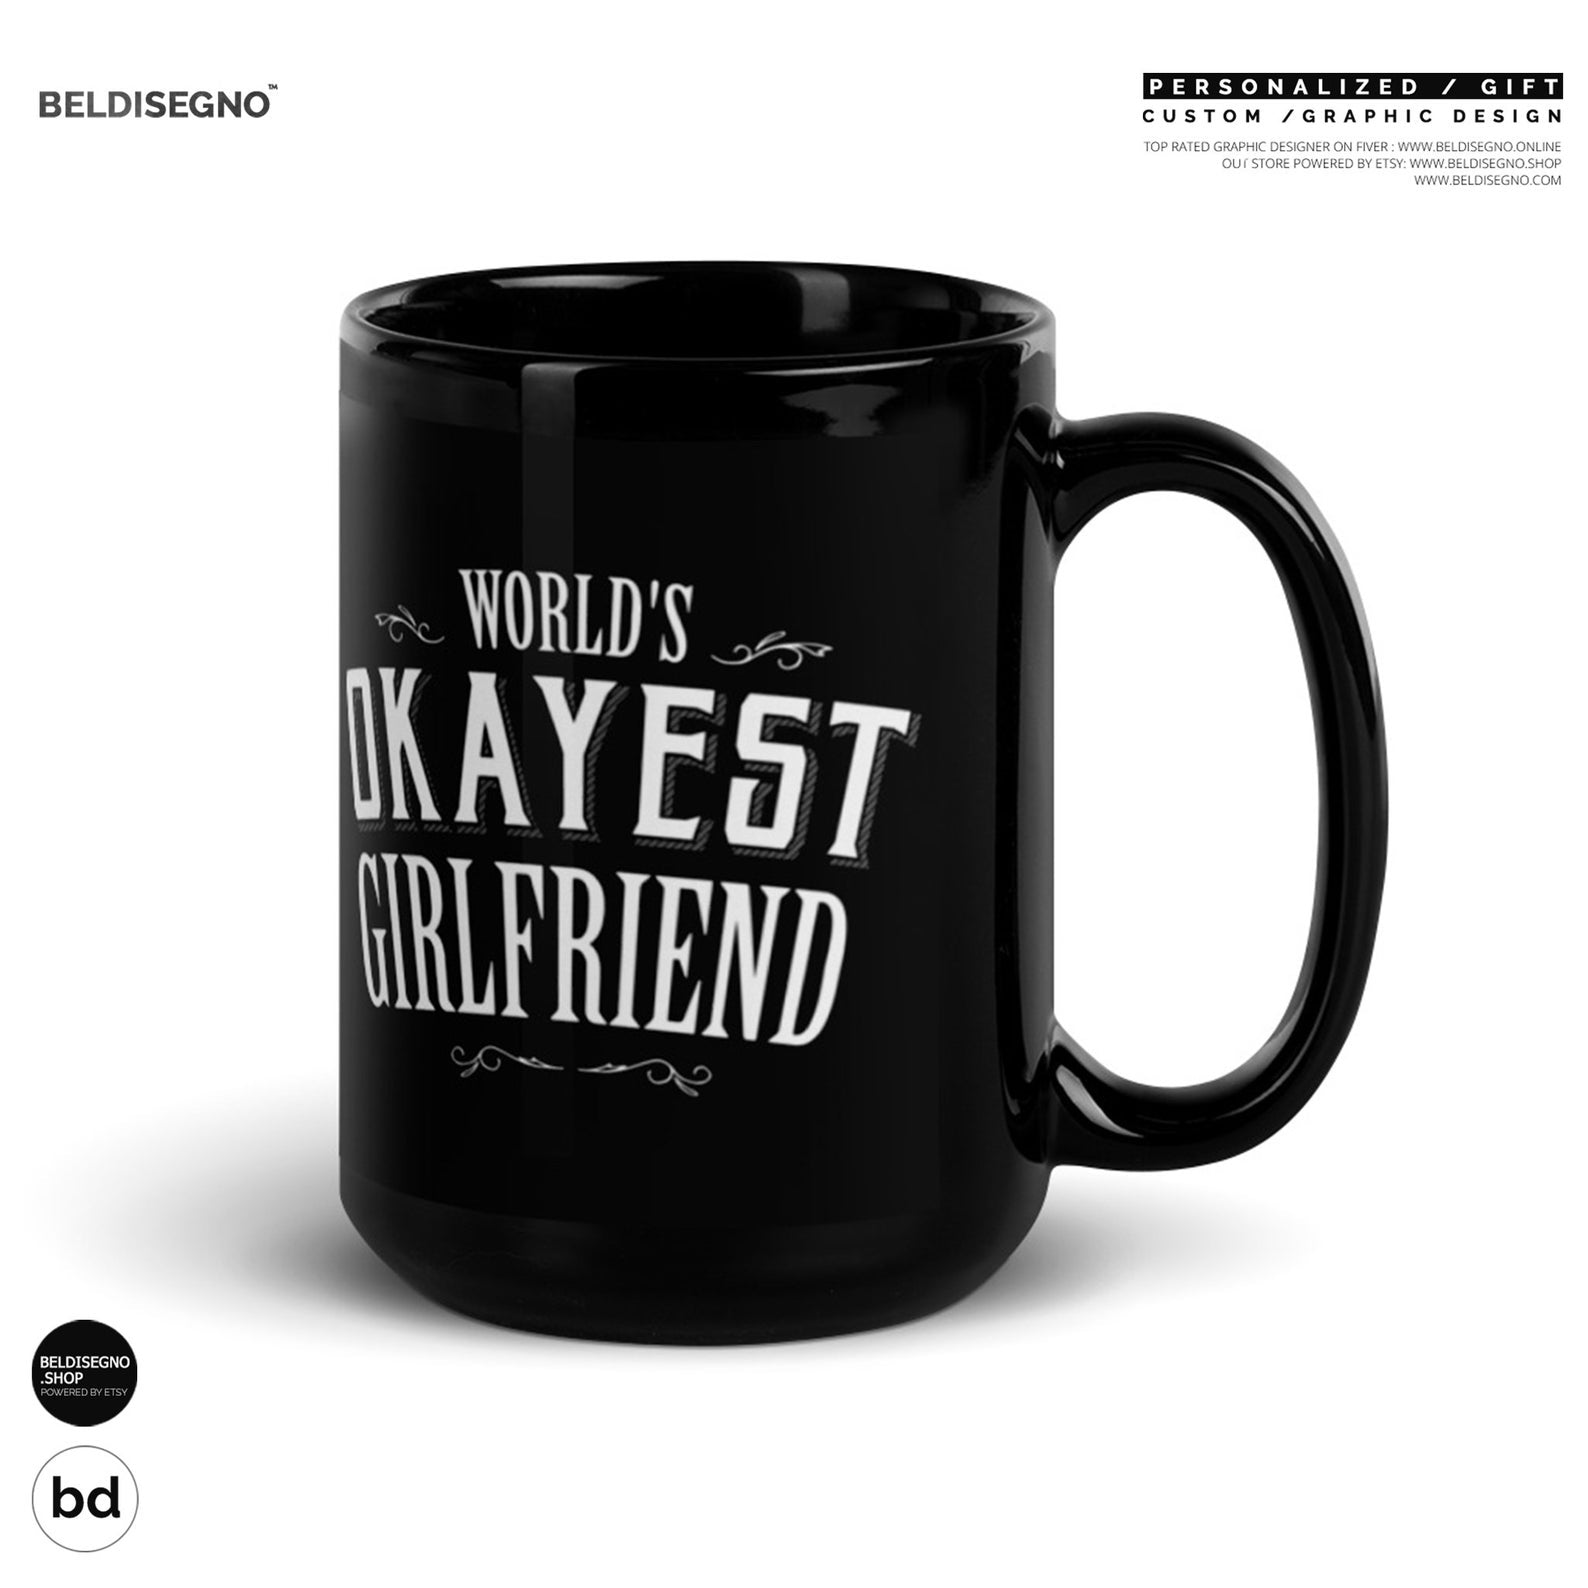 Gift for Girlfriend Mug World's Greatest Girlfriend Coffee Mug